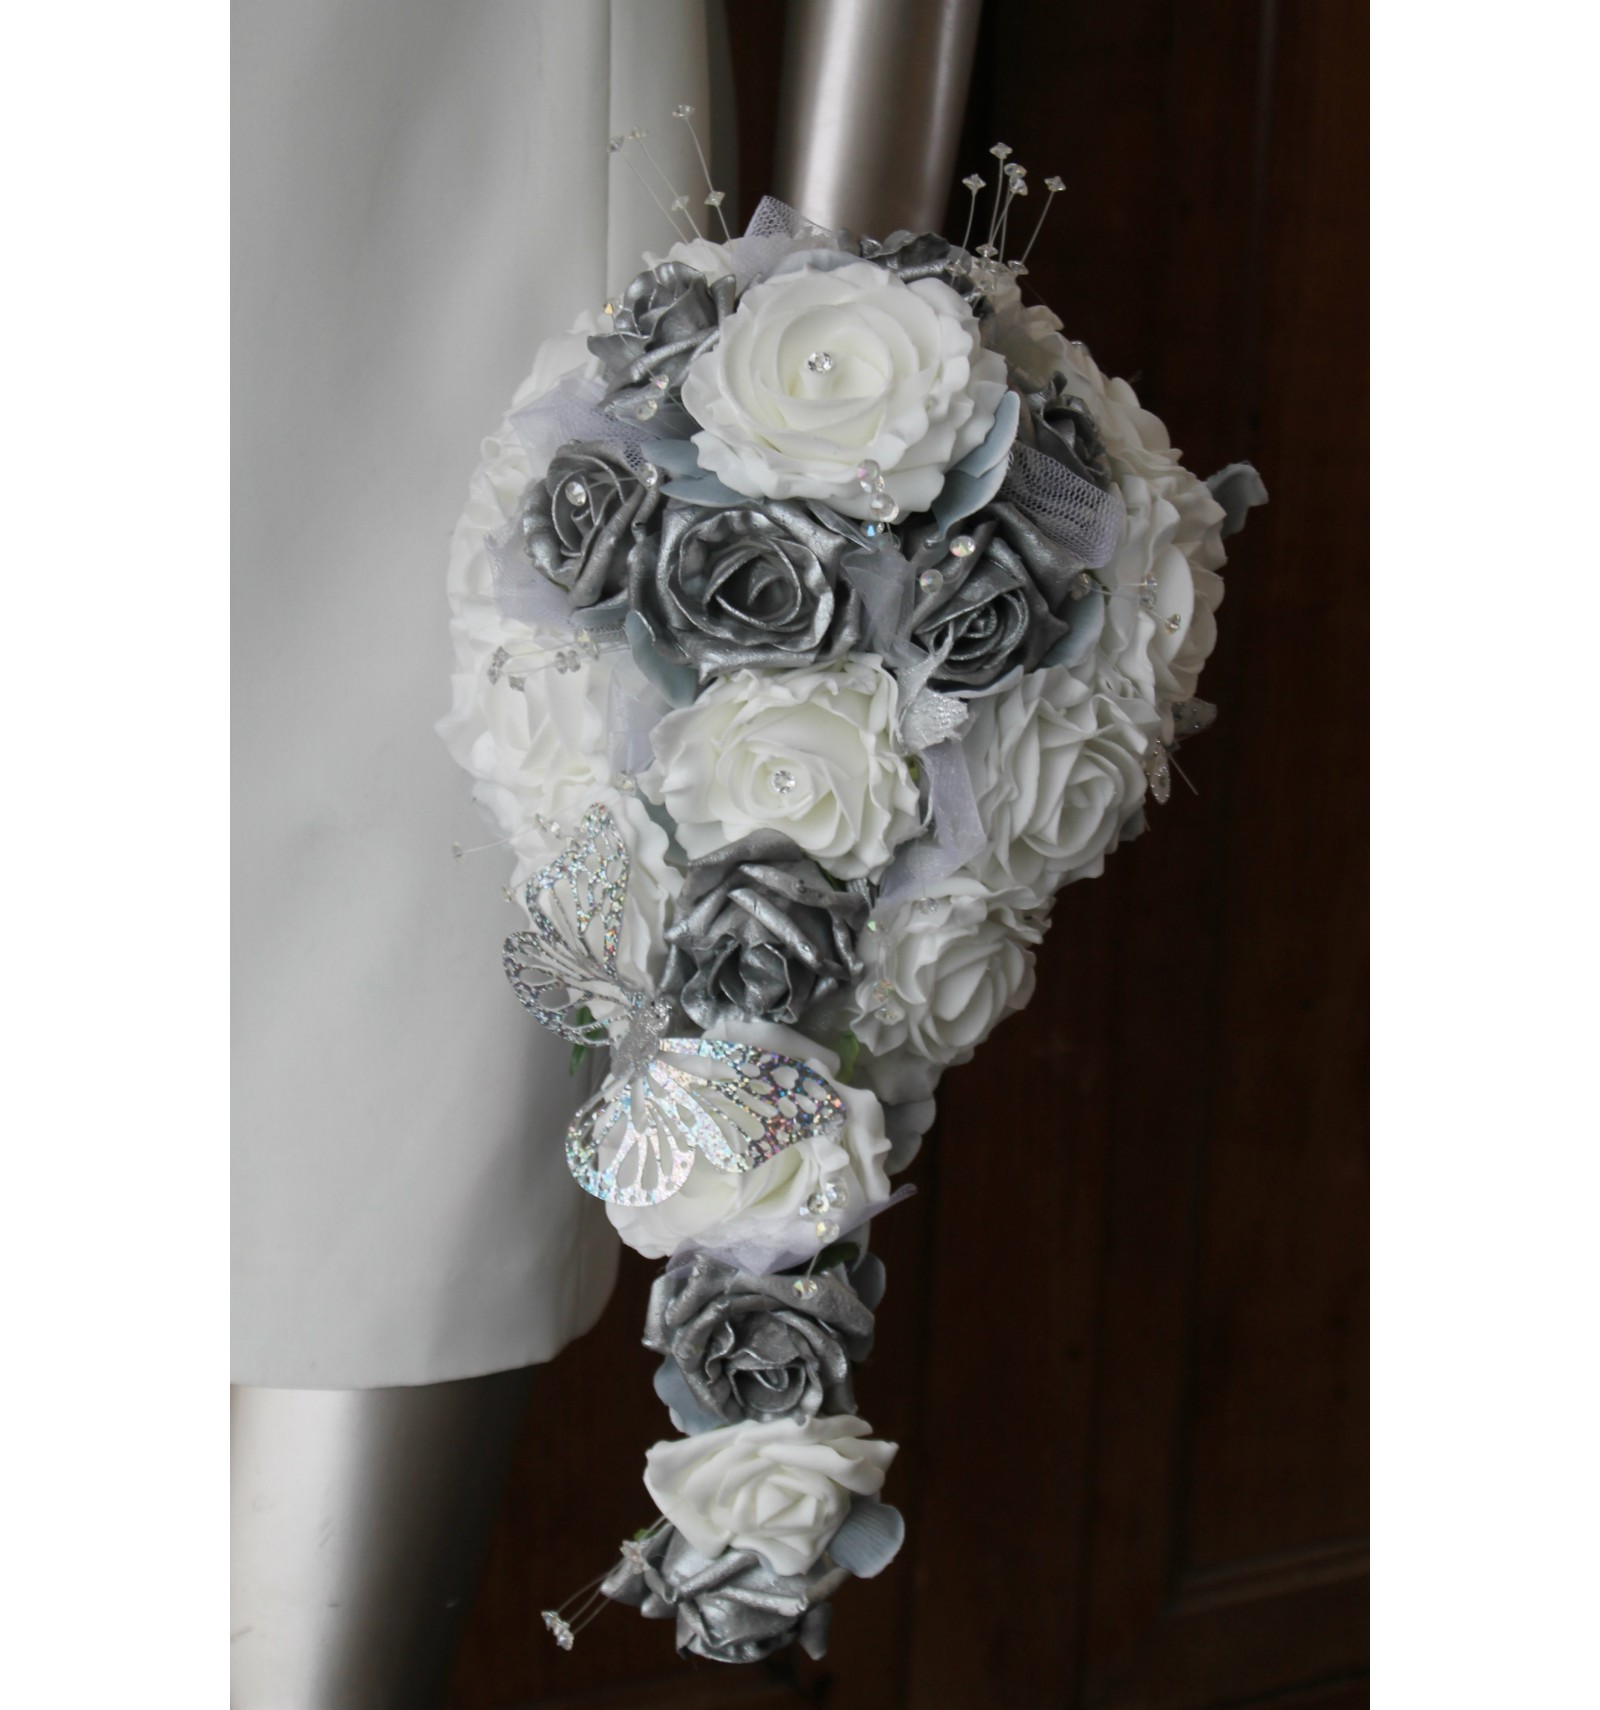 bouquet pour mariage tombant th me roses blanches gris argent bouquet de la mariee. Black Bedroom Furniture Sets. Home Design Ideas